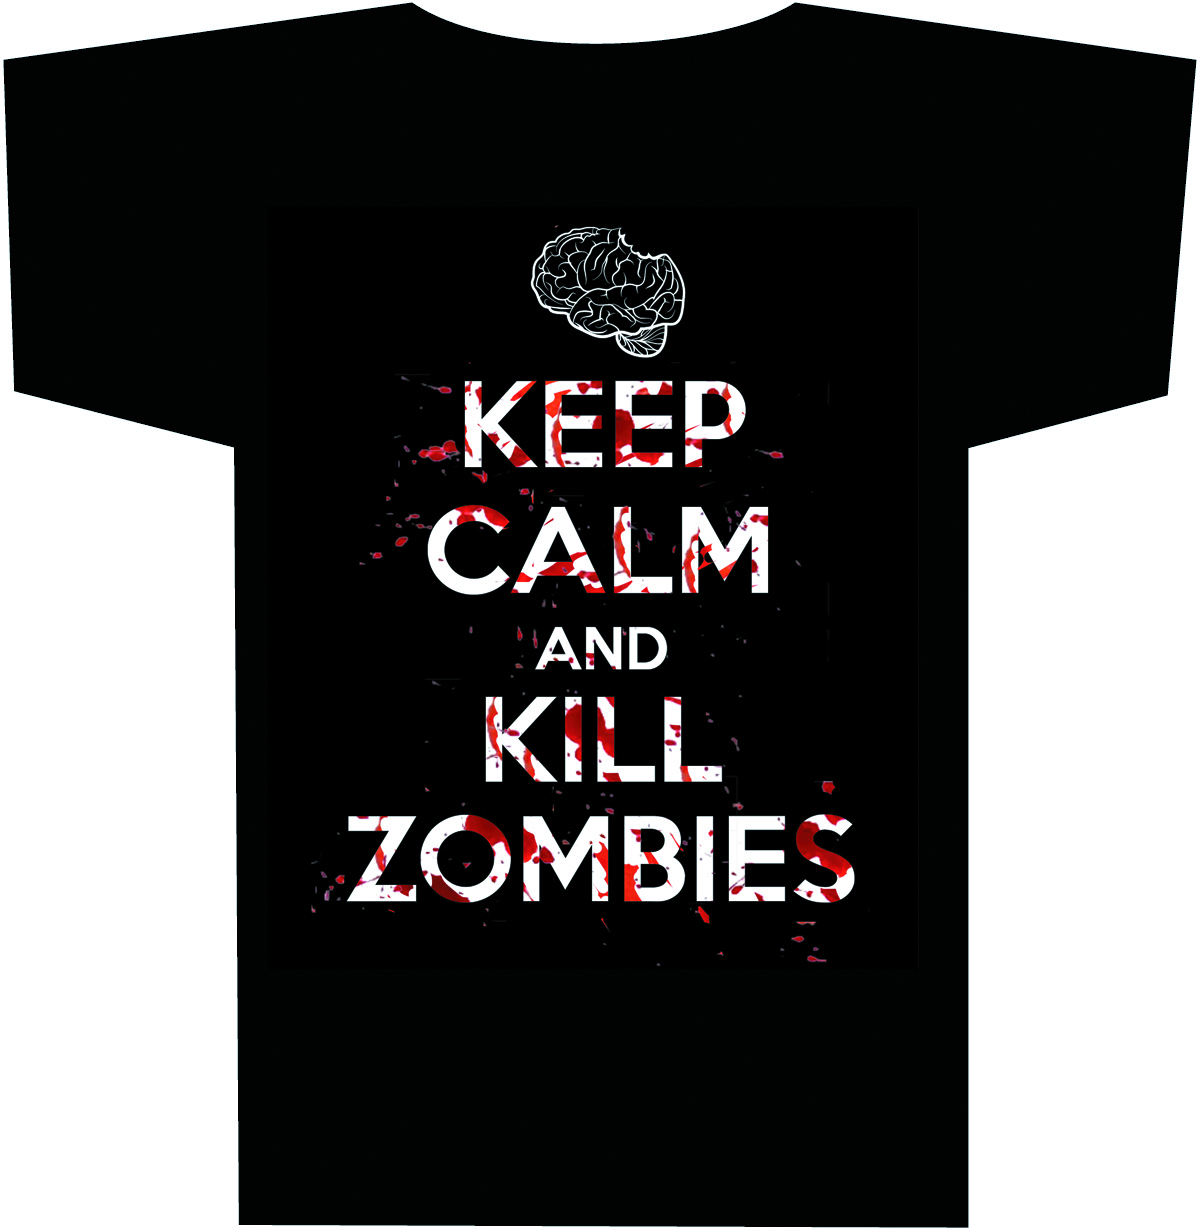 KEEP CALM & KILL ZOMBIES T/S XL